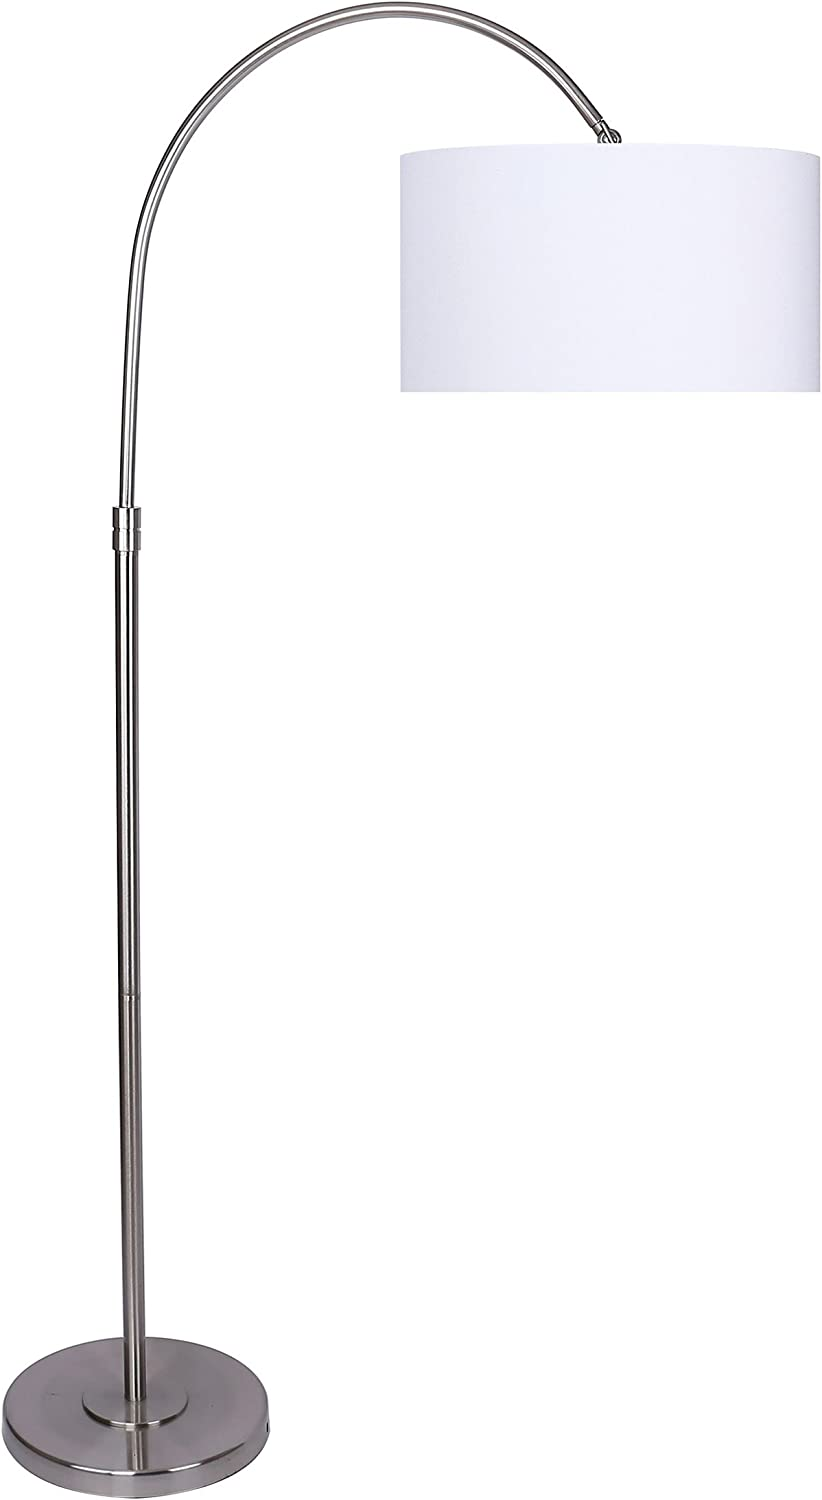 Grandview Gallery 63.5 Modern Brushed Nickel Arc Floor Lamp with Tiered Base and White Linen Hanging Drum Shade – Lighting for Behind The Couch, Free Standing, Reading, The Bedroom, or The Office